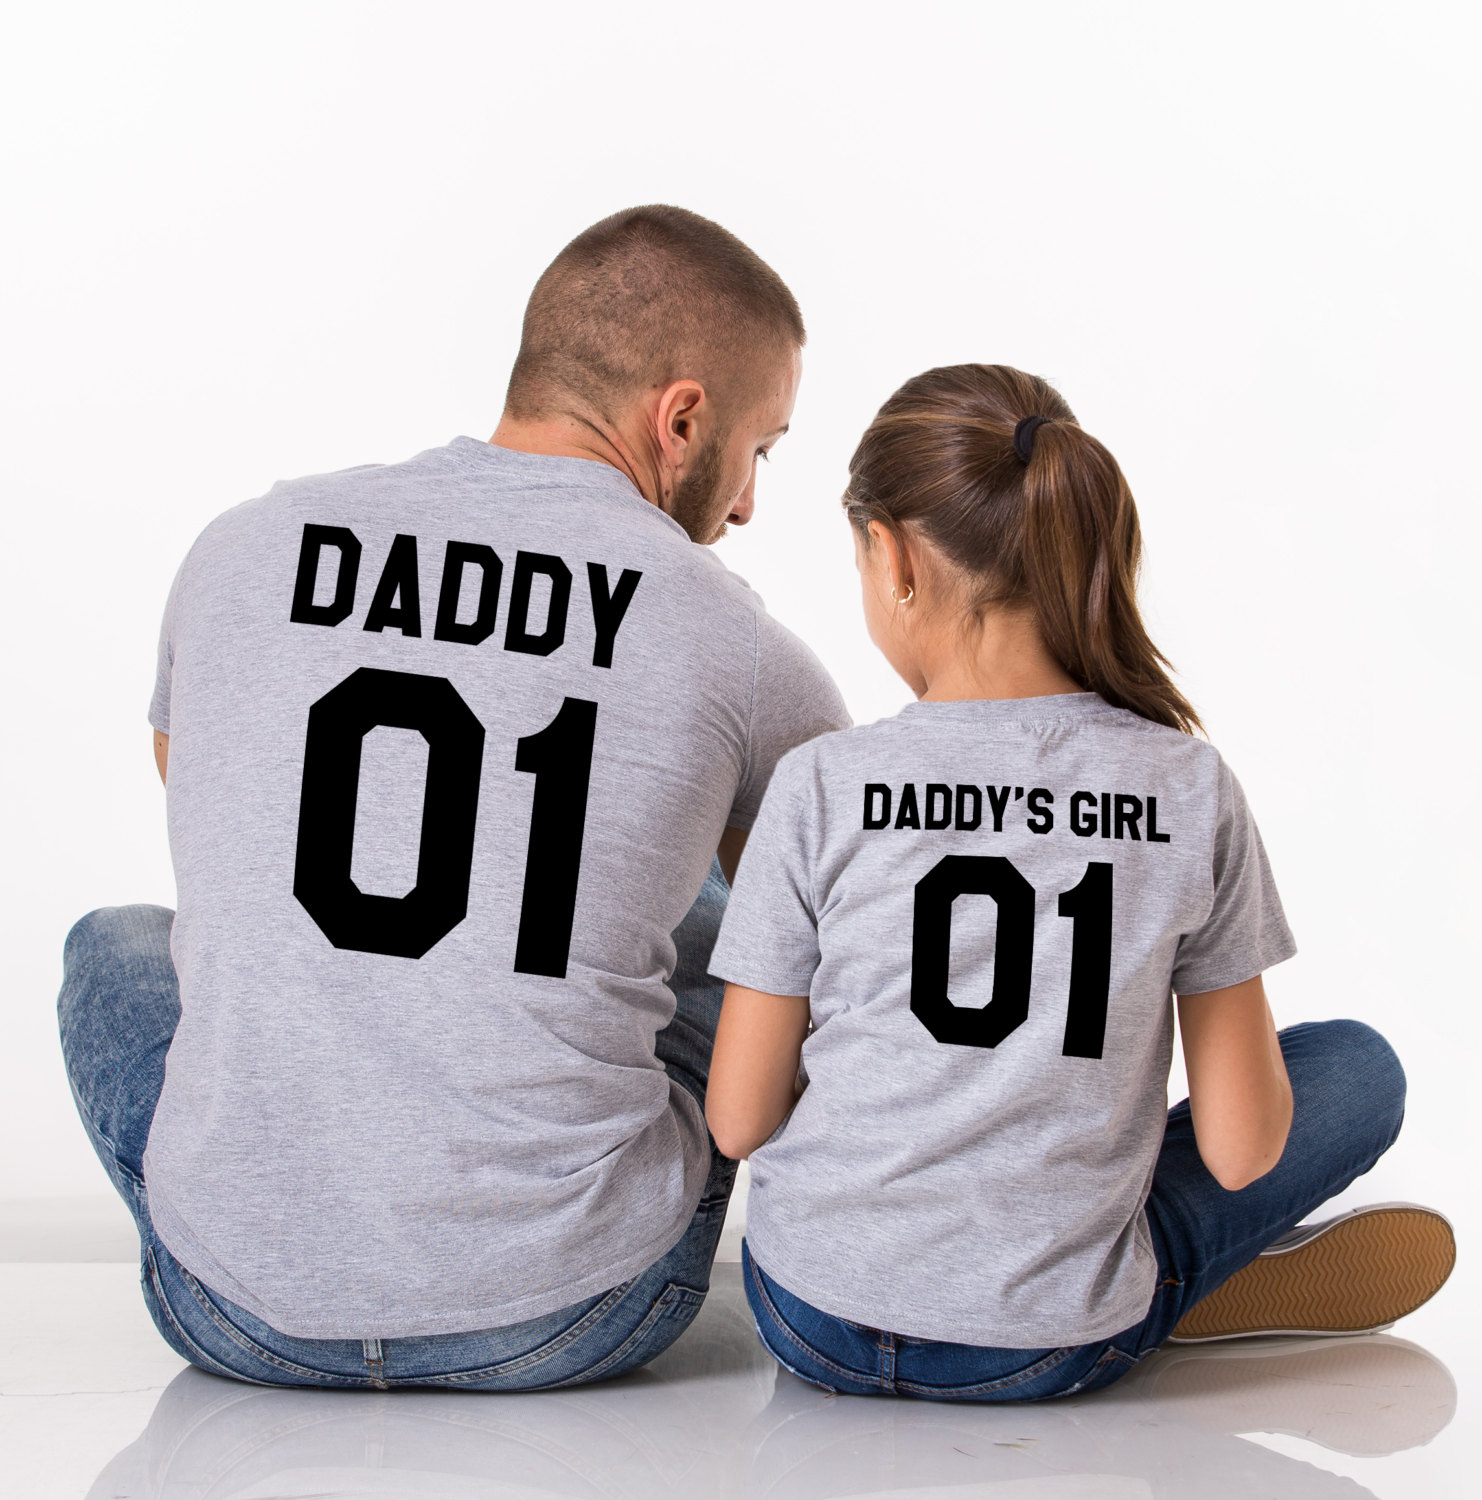 daddys girl Your little one is a daddy's girl instead of wondering if you did something wrong  or feeling rejected by this, you should be happy that they are.